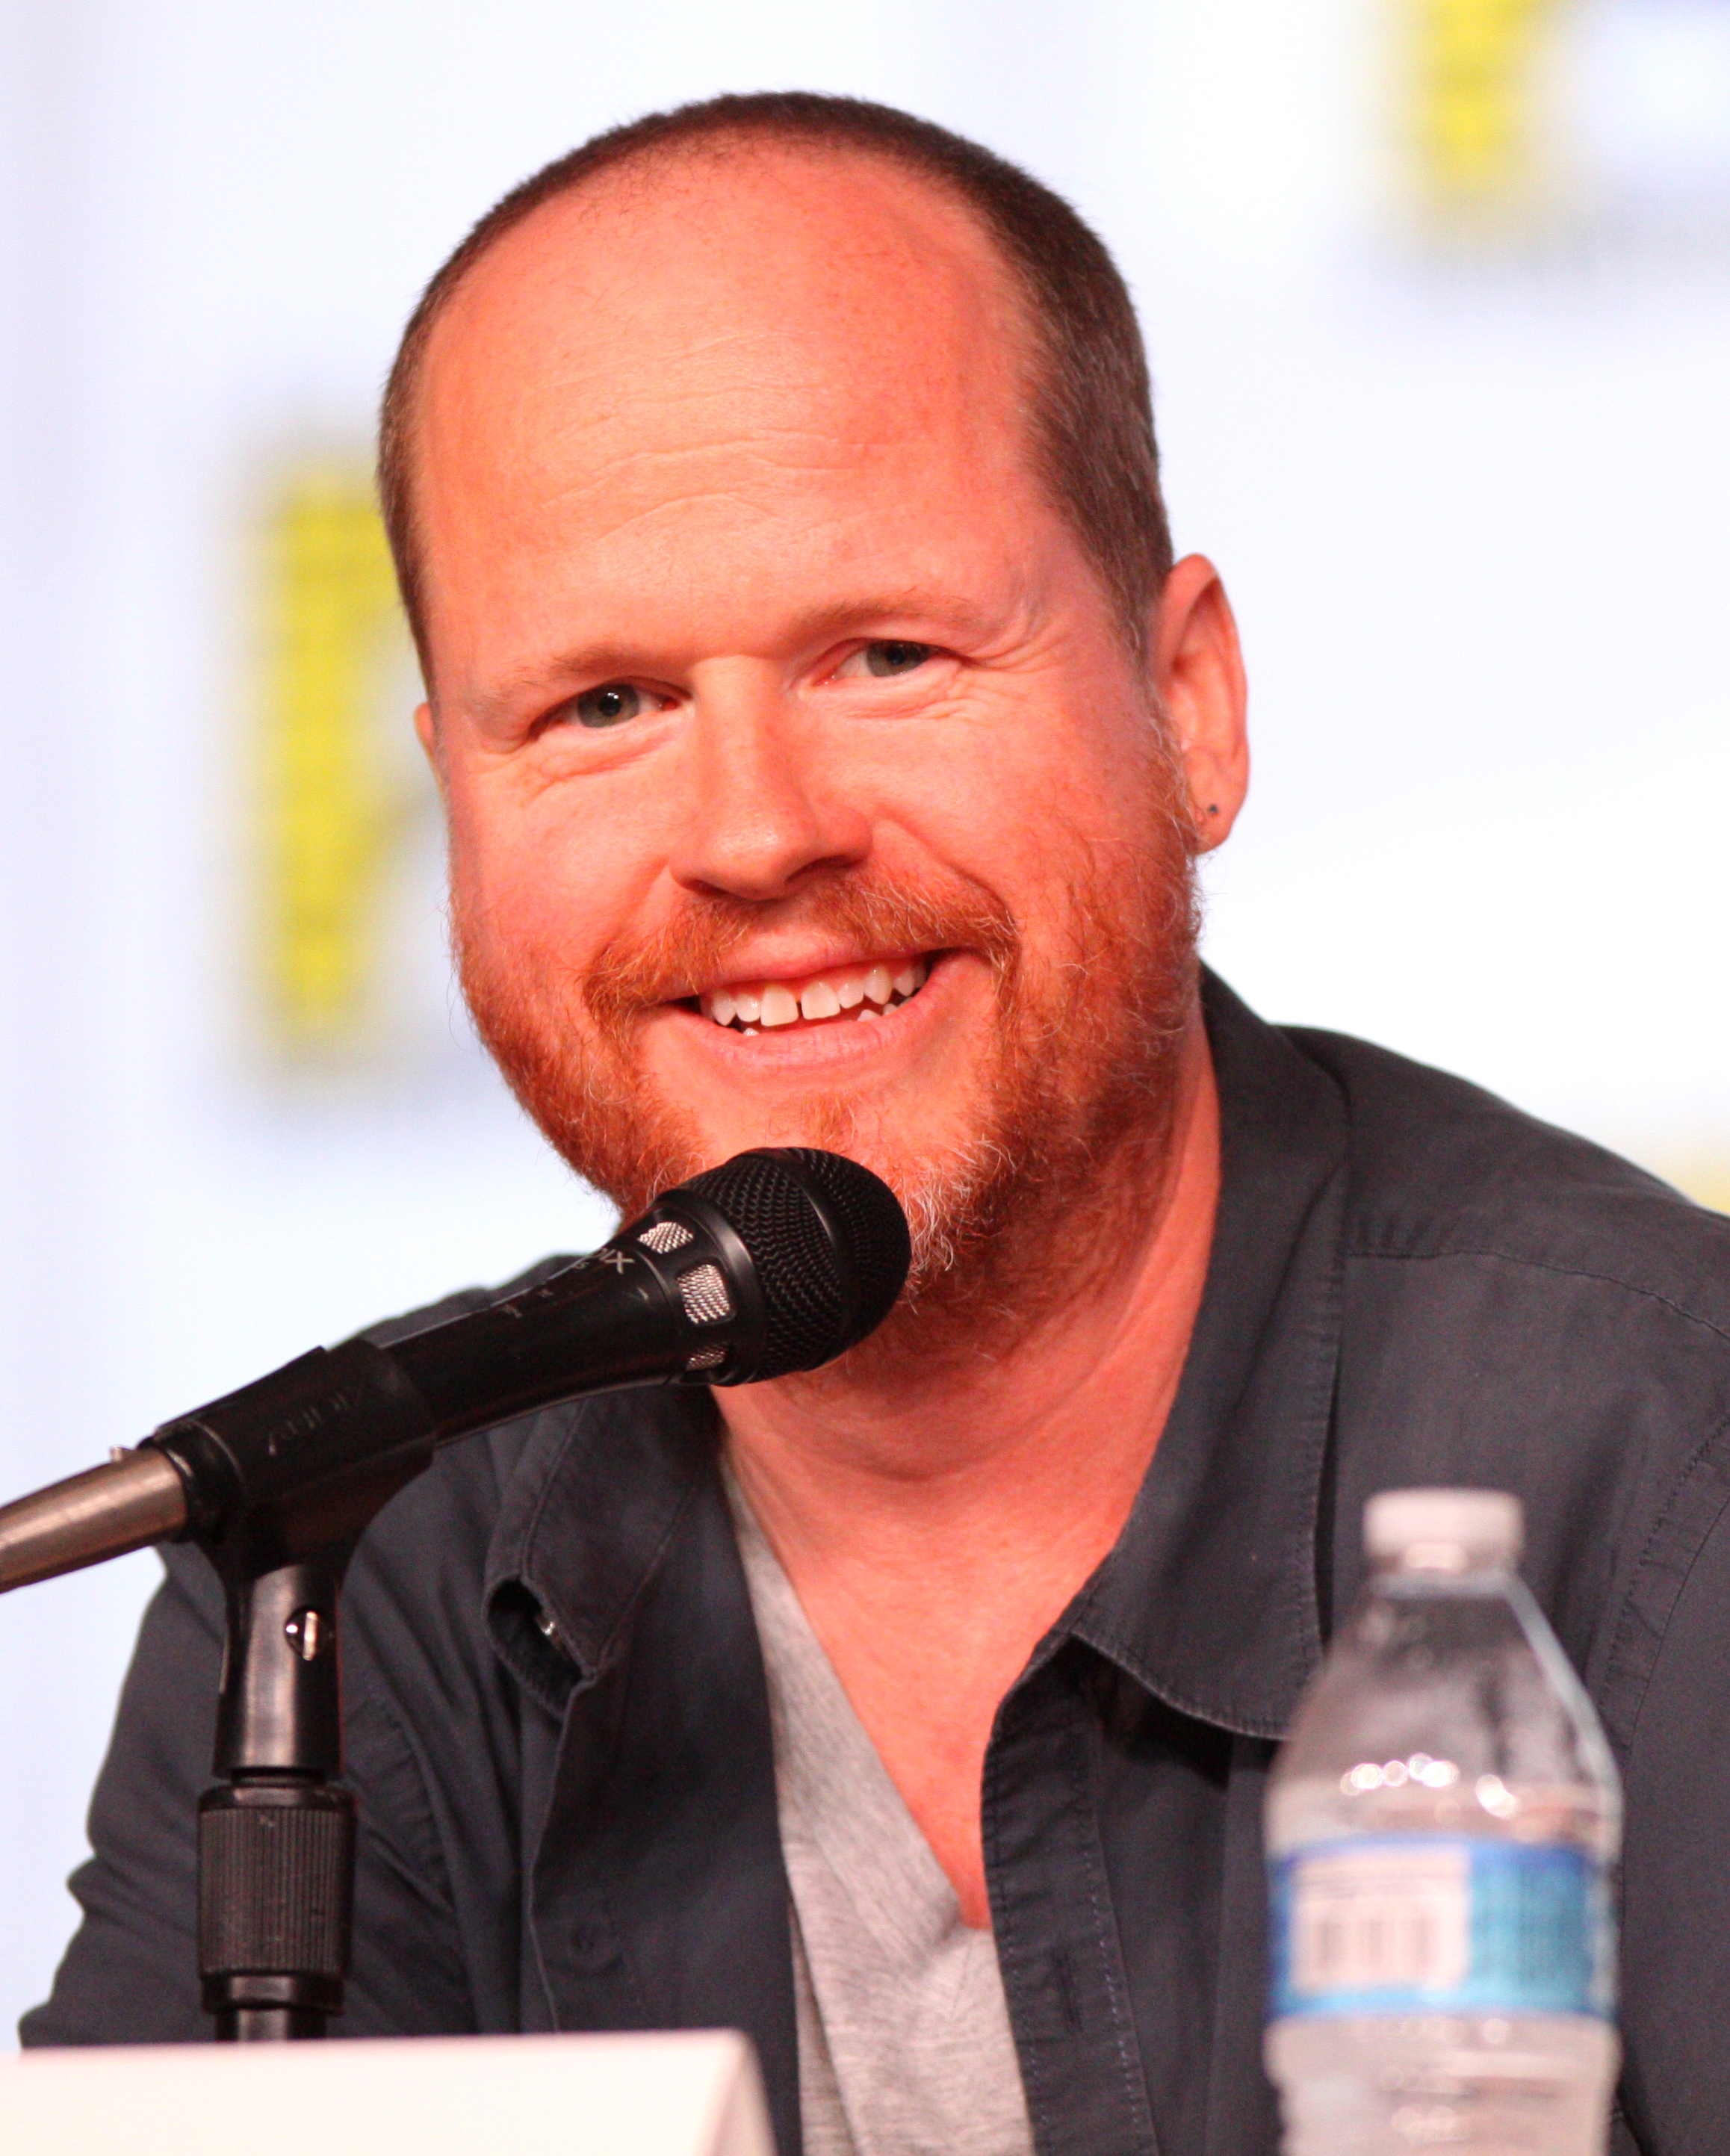 Books/articles on Joss Whedon?